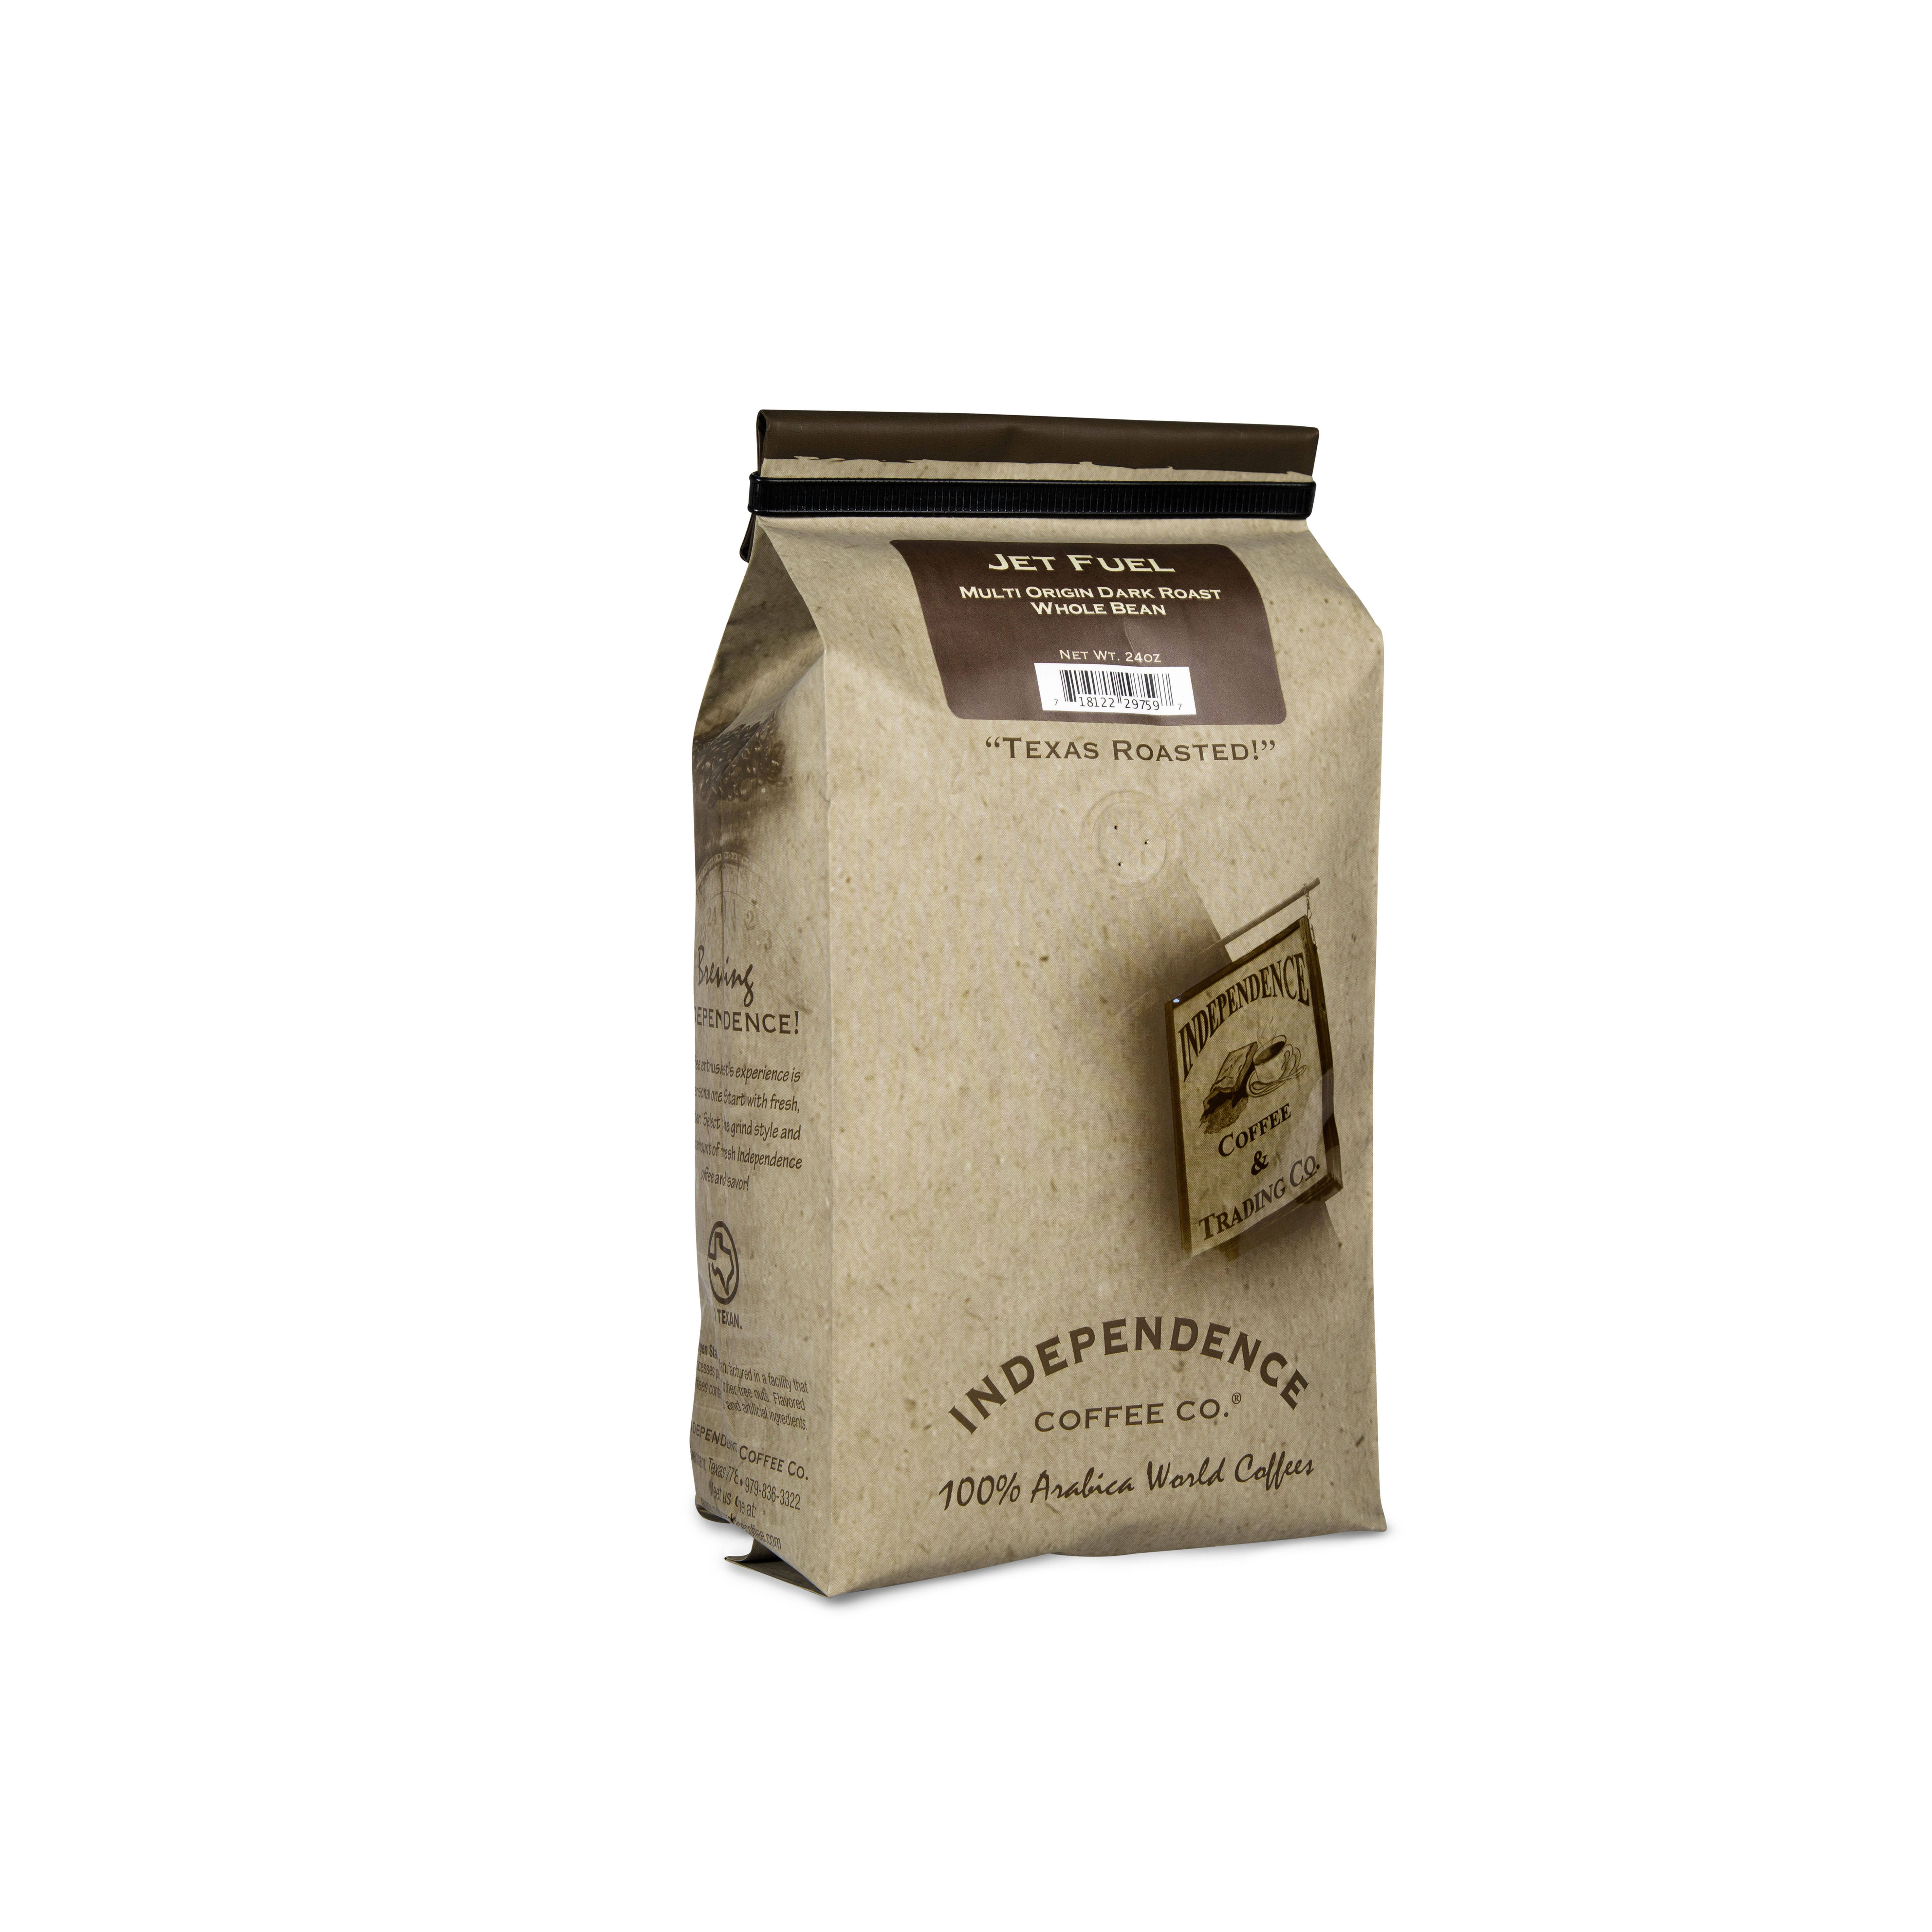 Arabica Dark Roast Coffee Whole Bean Coffee 24 lb. Independence Coffee Co Jet Fuel Intense And Heavy Body